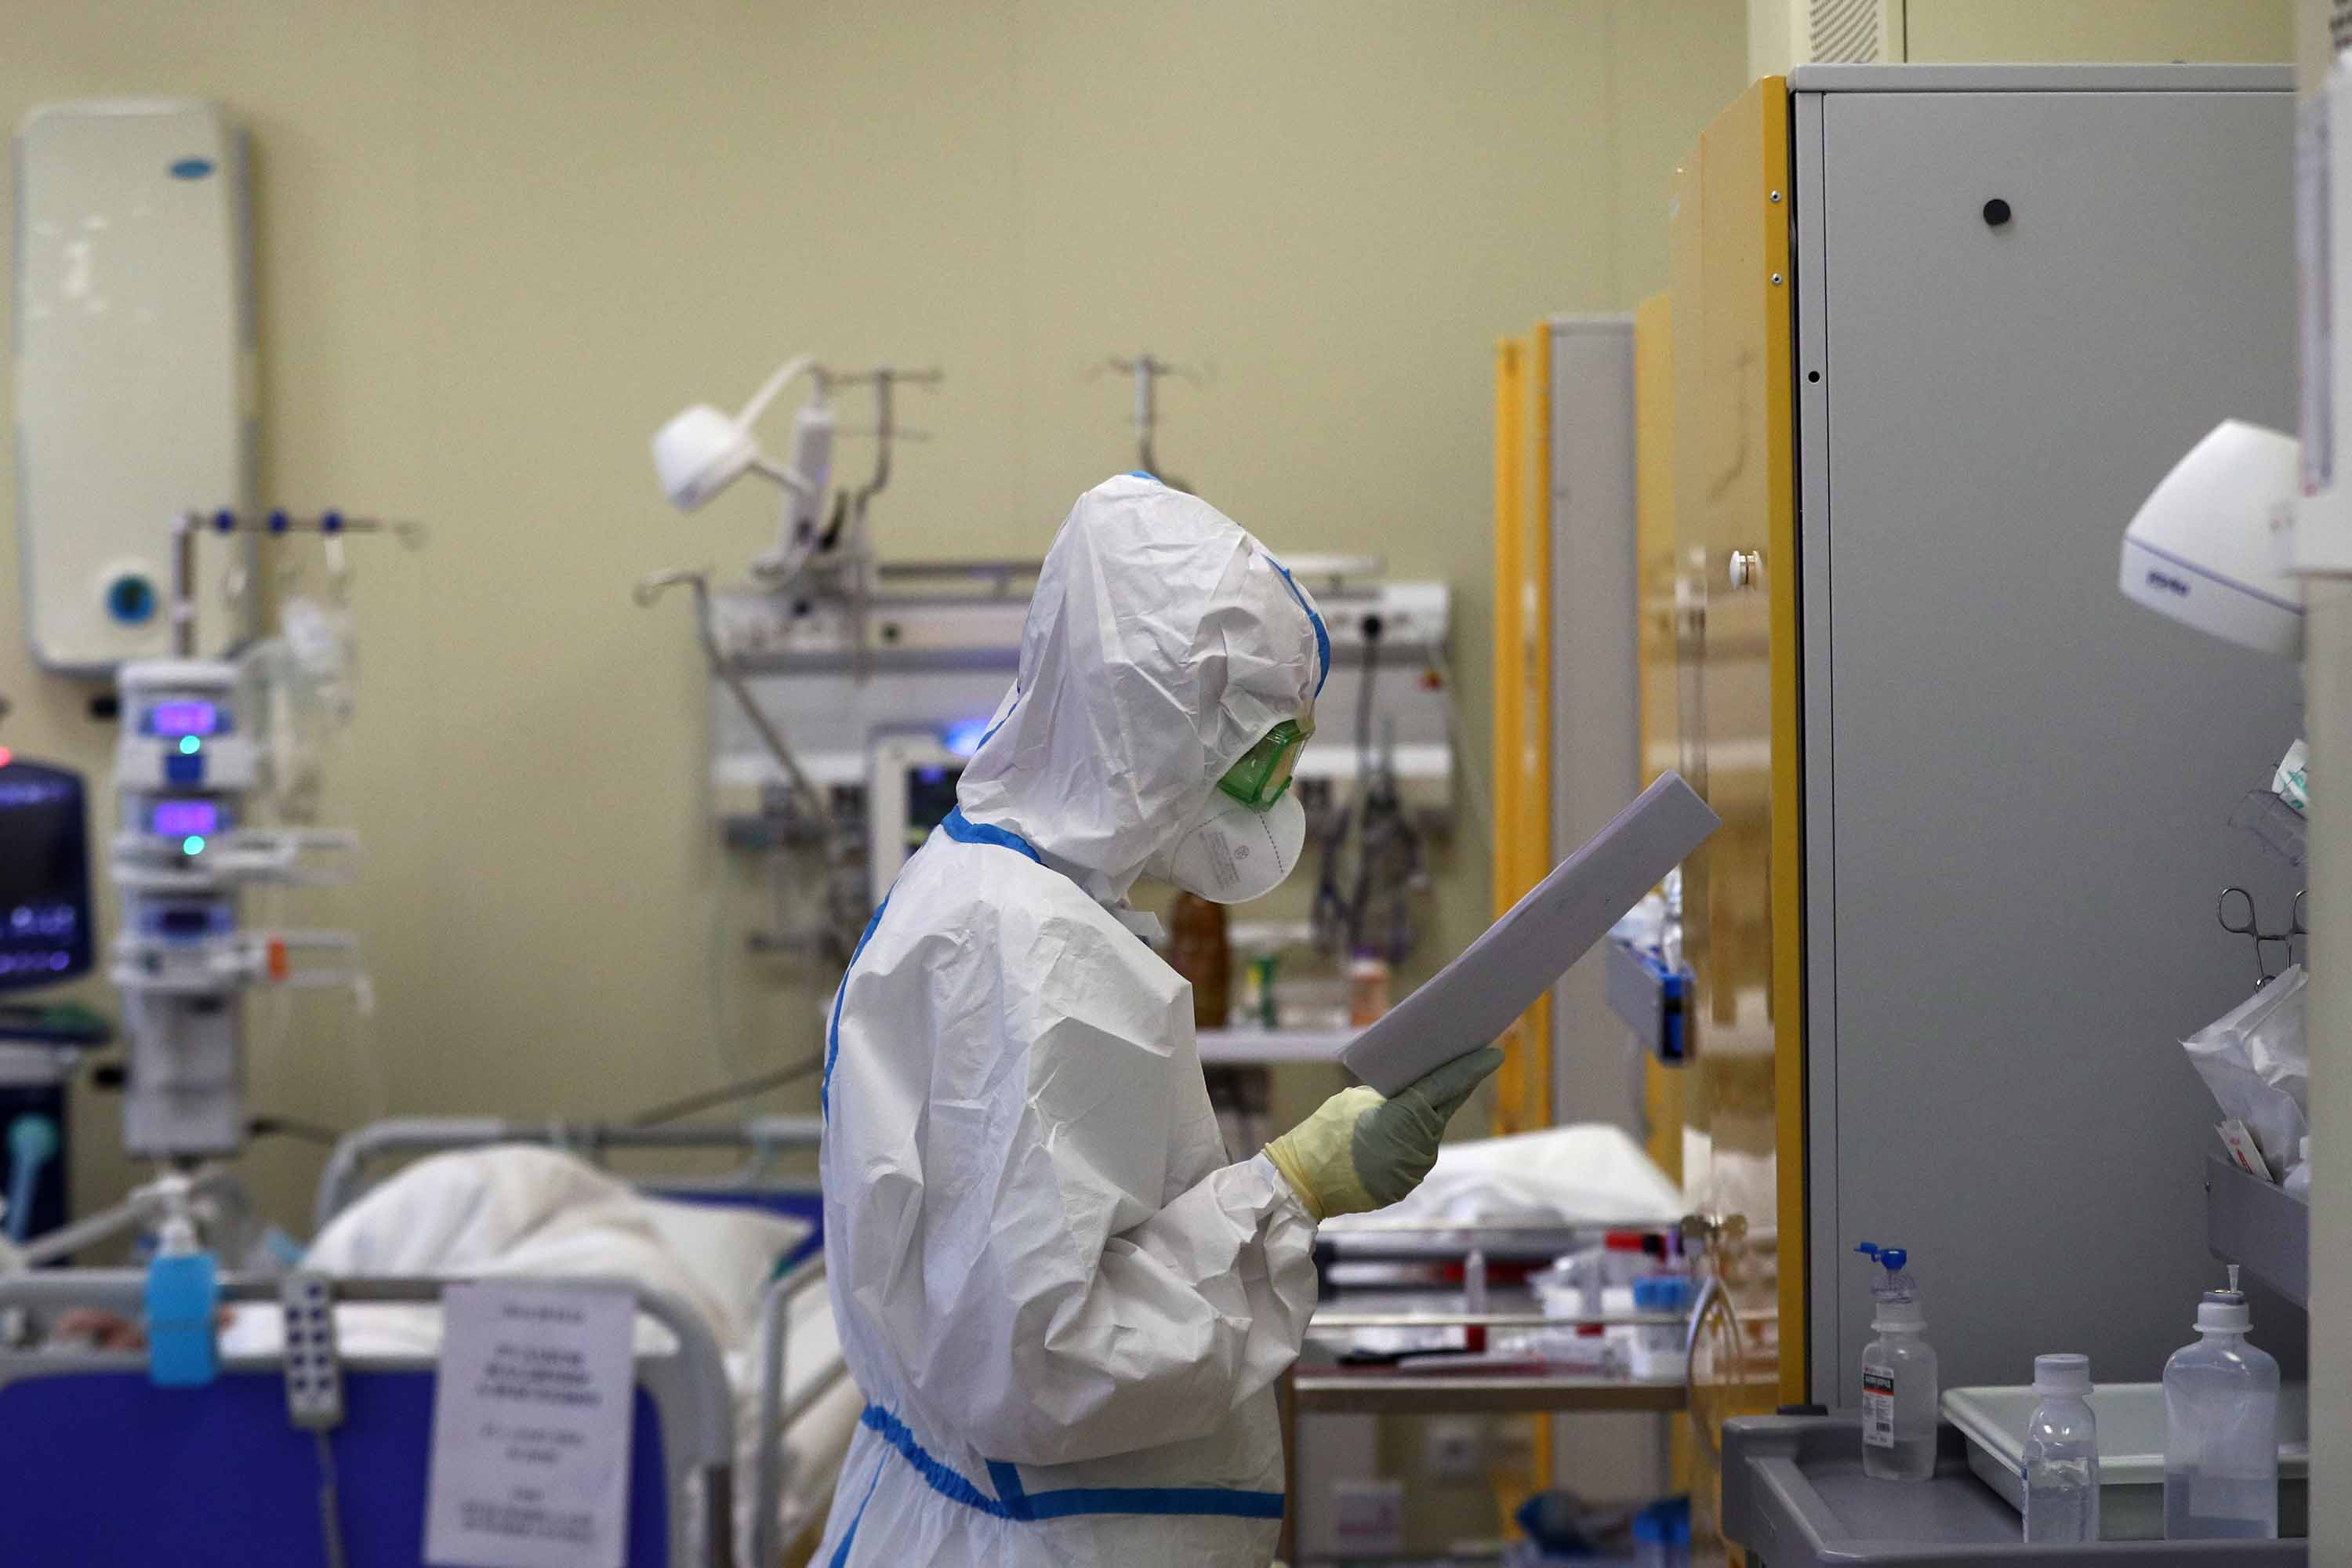 A member of the medical staff works in an intensive care unit for COVID-19 patients at the Clinical Research Center of the Russian Federal Biomedical Agency (FMBA) in Moscow, on October 14.